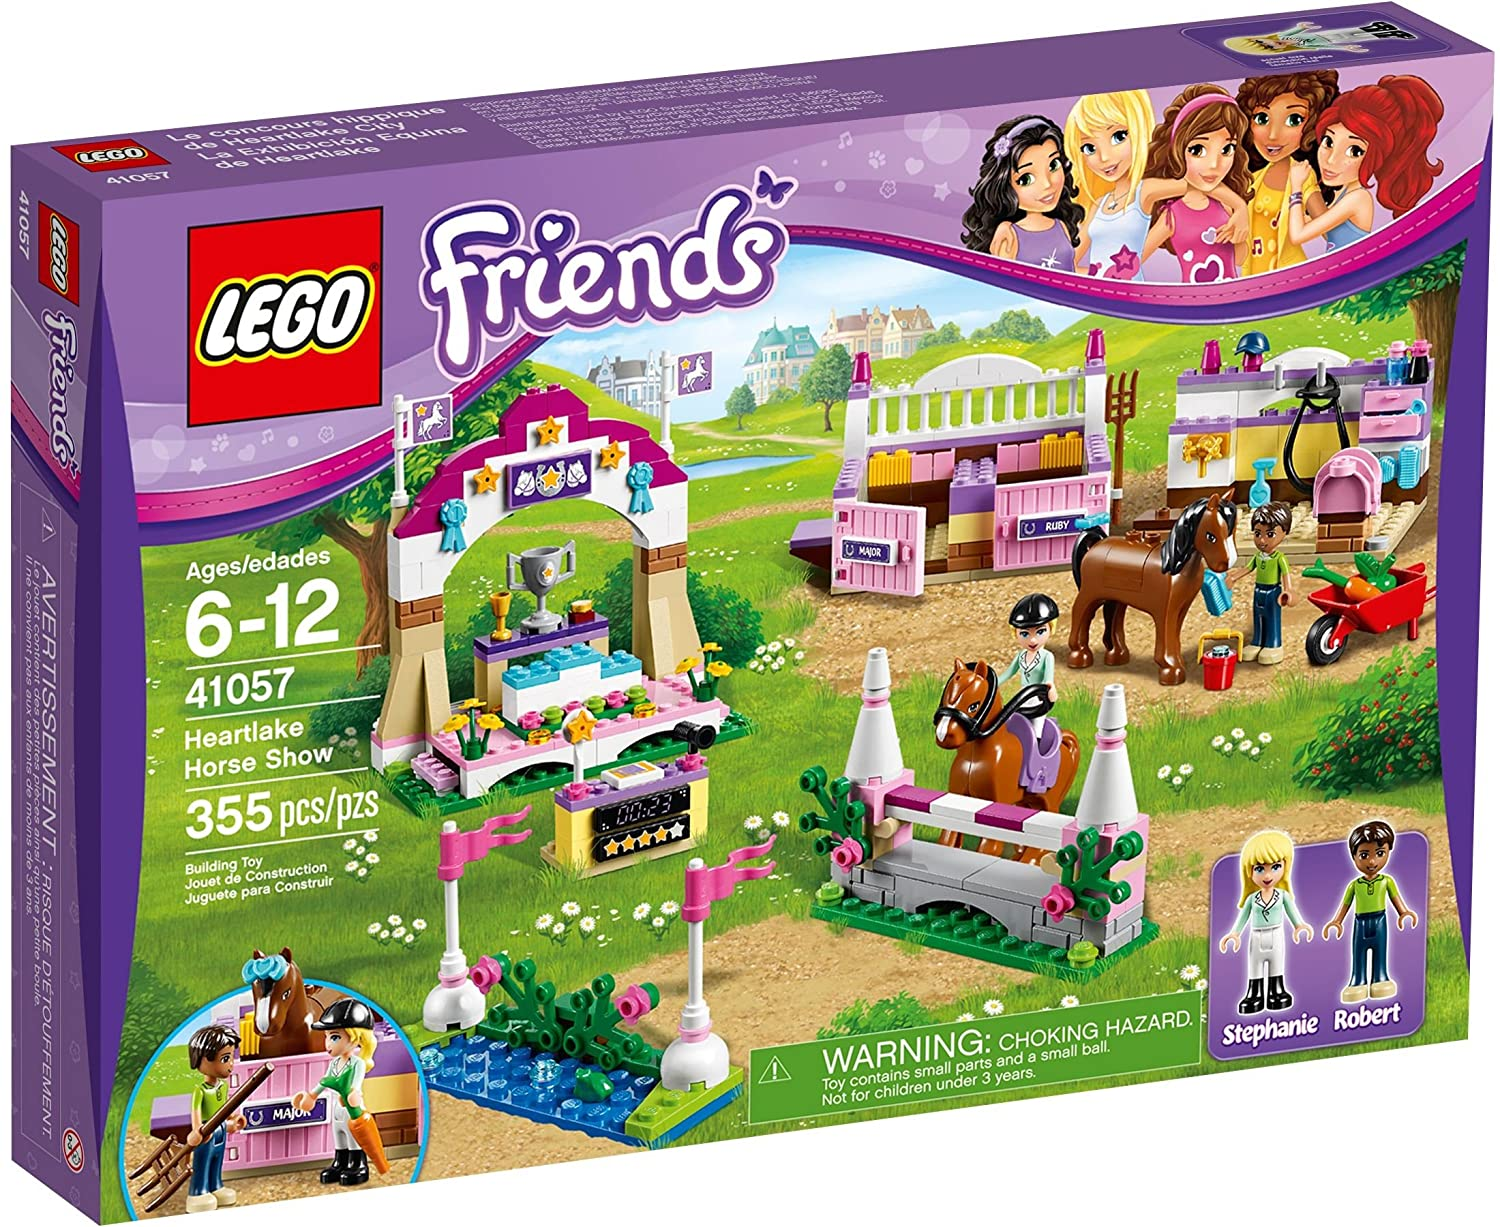 LEGO Friends Set 41057 Heartlake Horse Show Lego horses sets